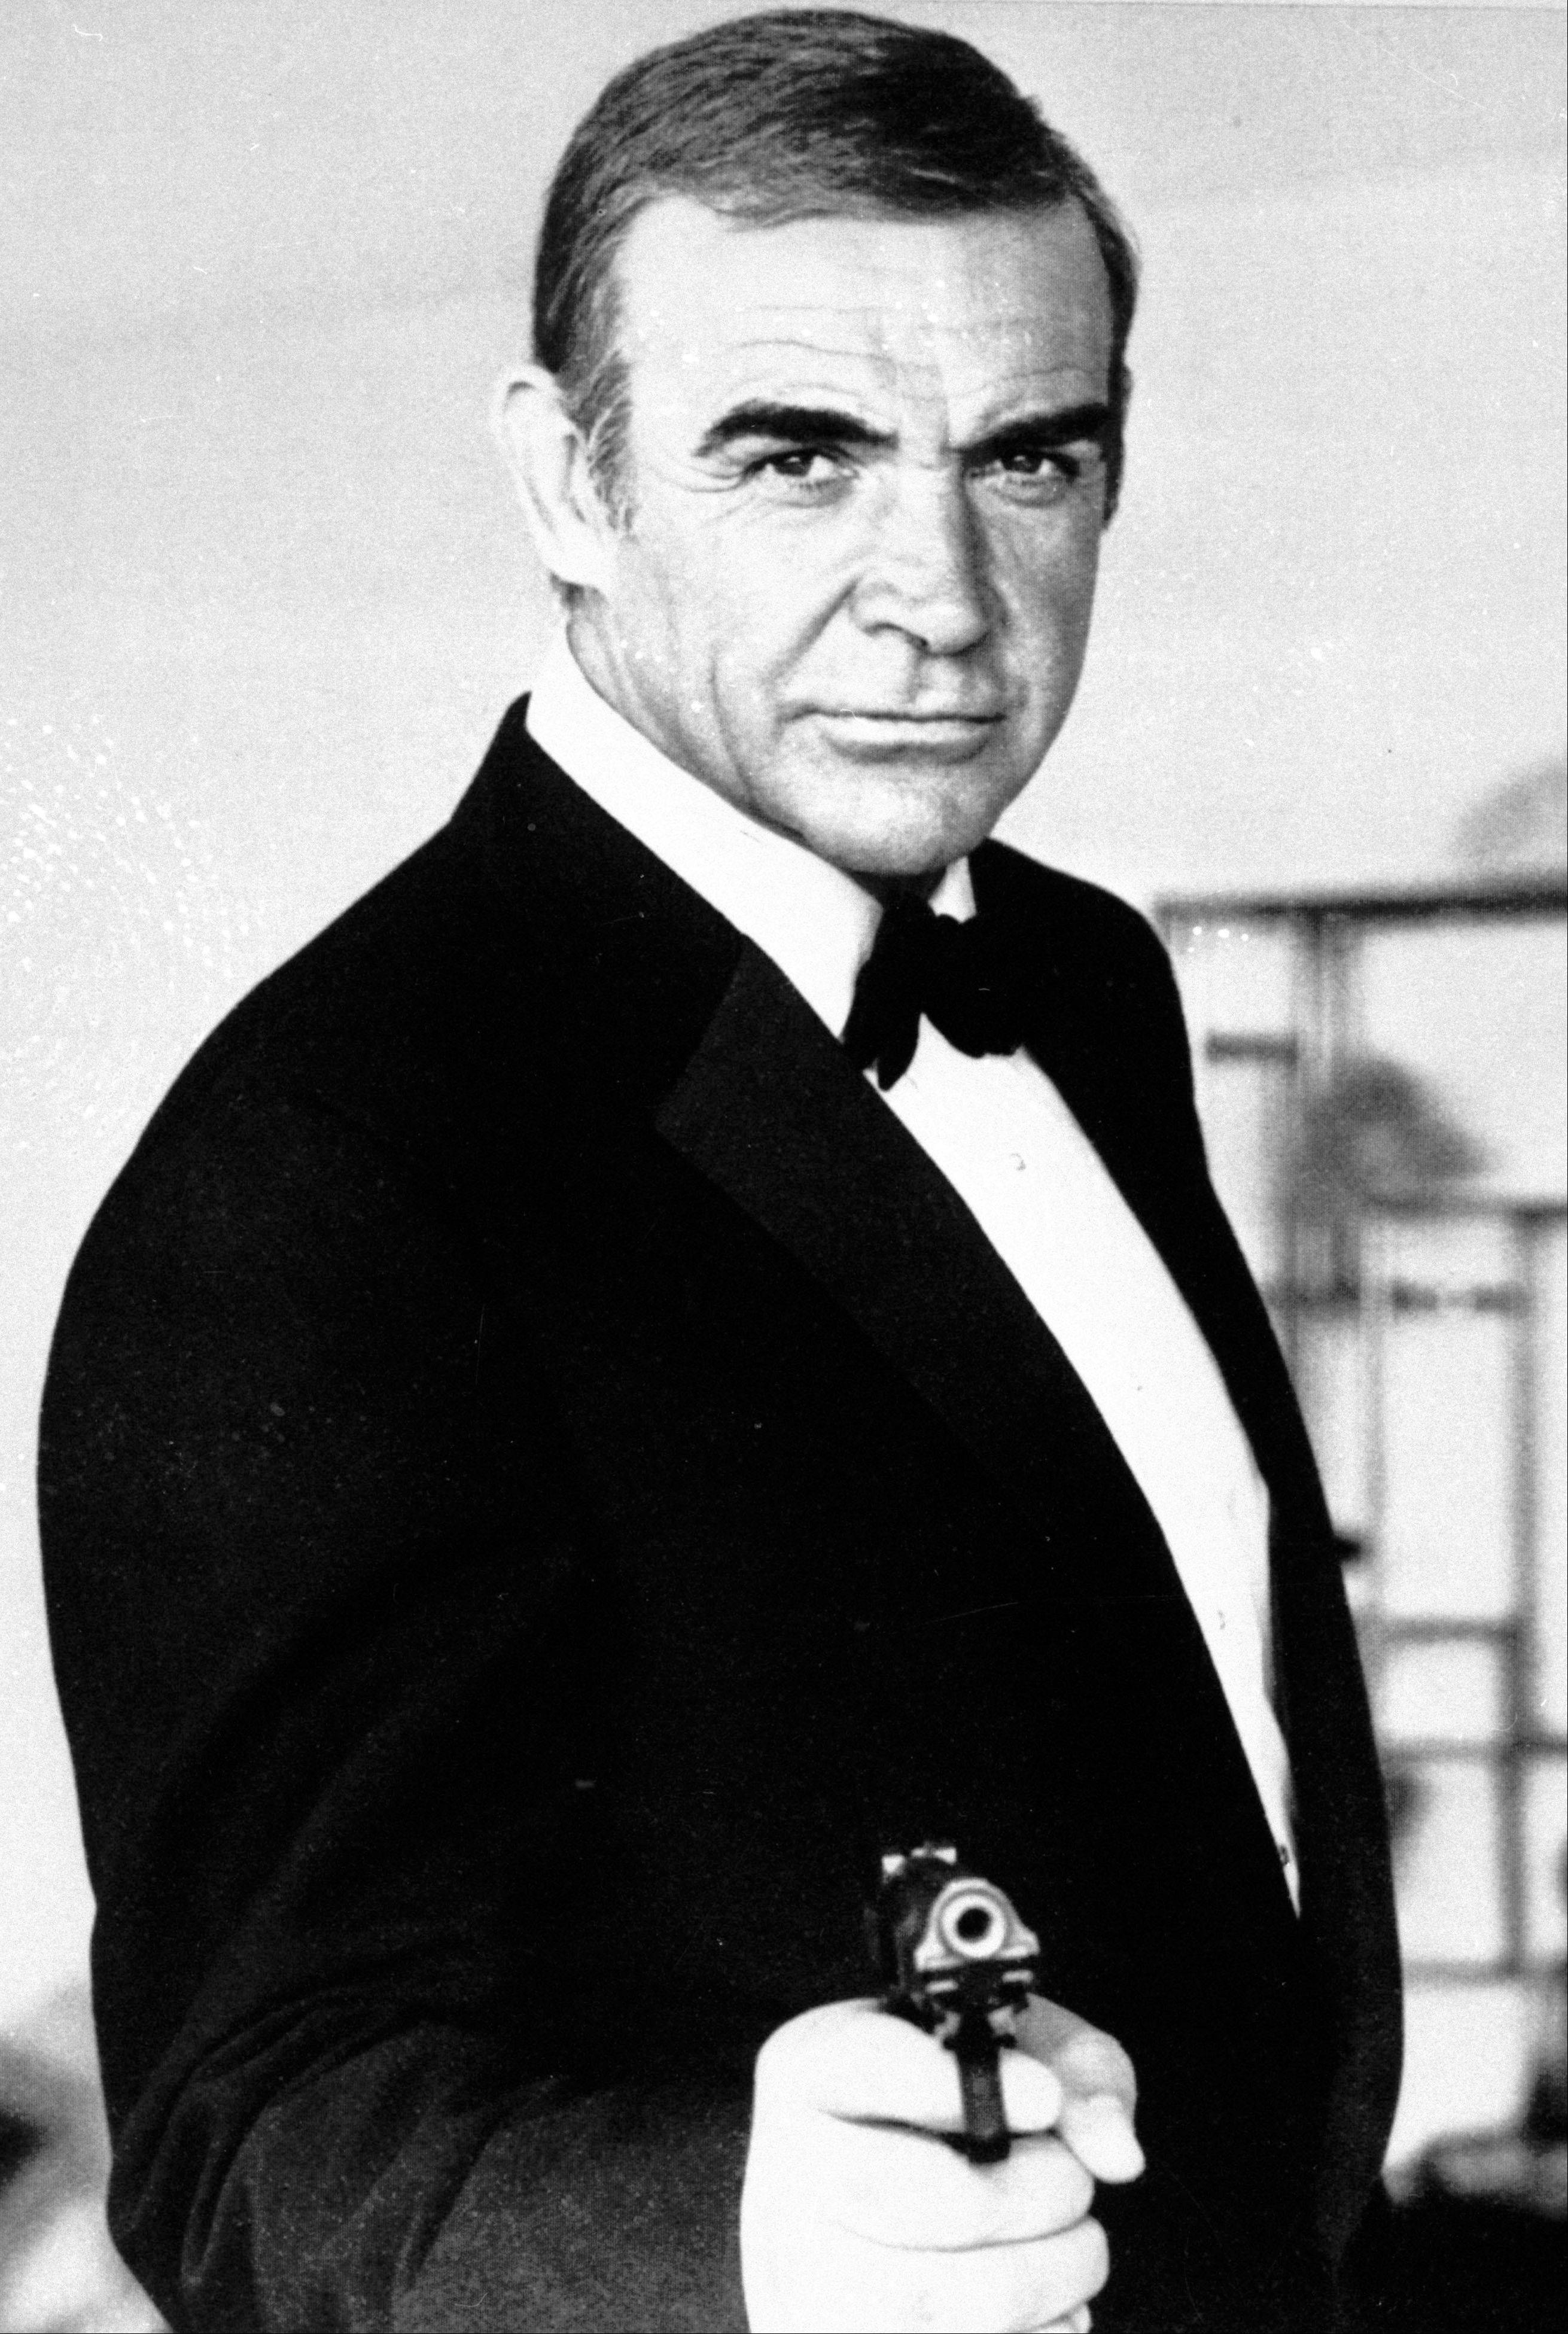 This undated file photo shows Sean Connery as James Bond in �Never Say Never Again.� The film �Never Say Never Again,� a 1983 remake of �Thunderball,� has its ironic title because it brought Connery back as Bond after a 12-year hiatus.